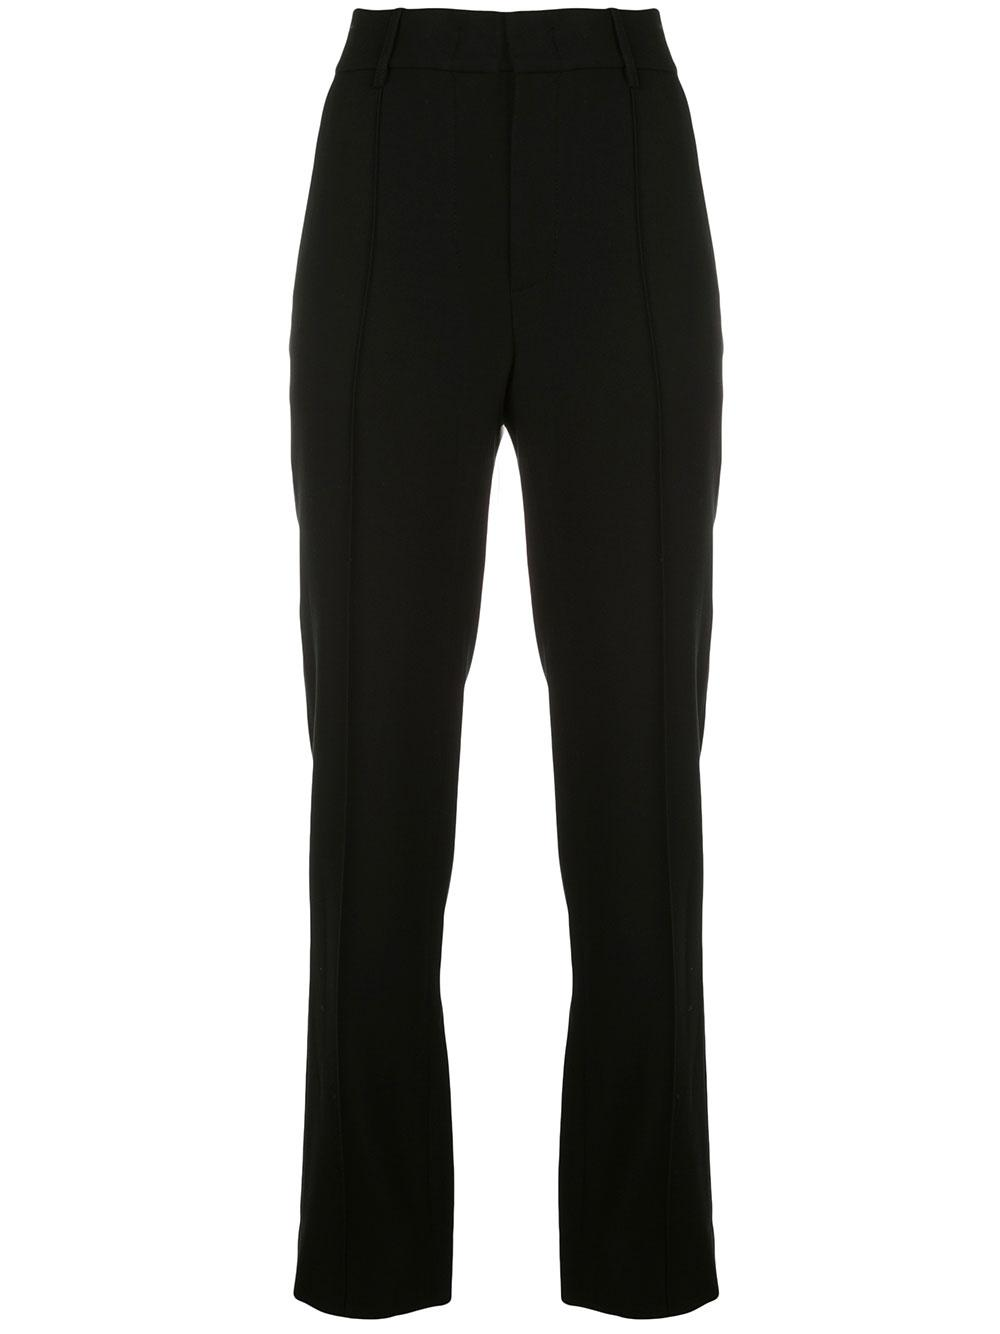 High Waist Tailored Pant Item # V633021738